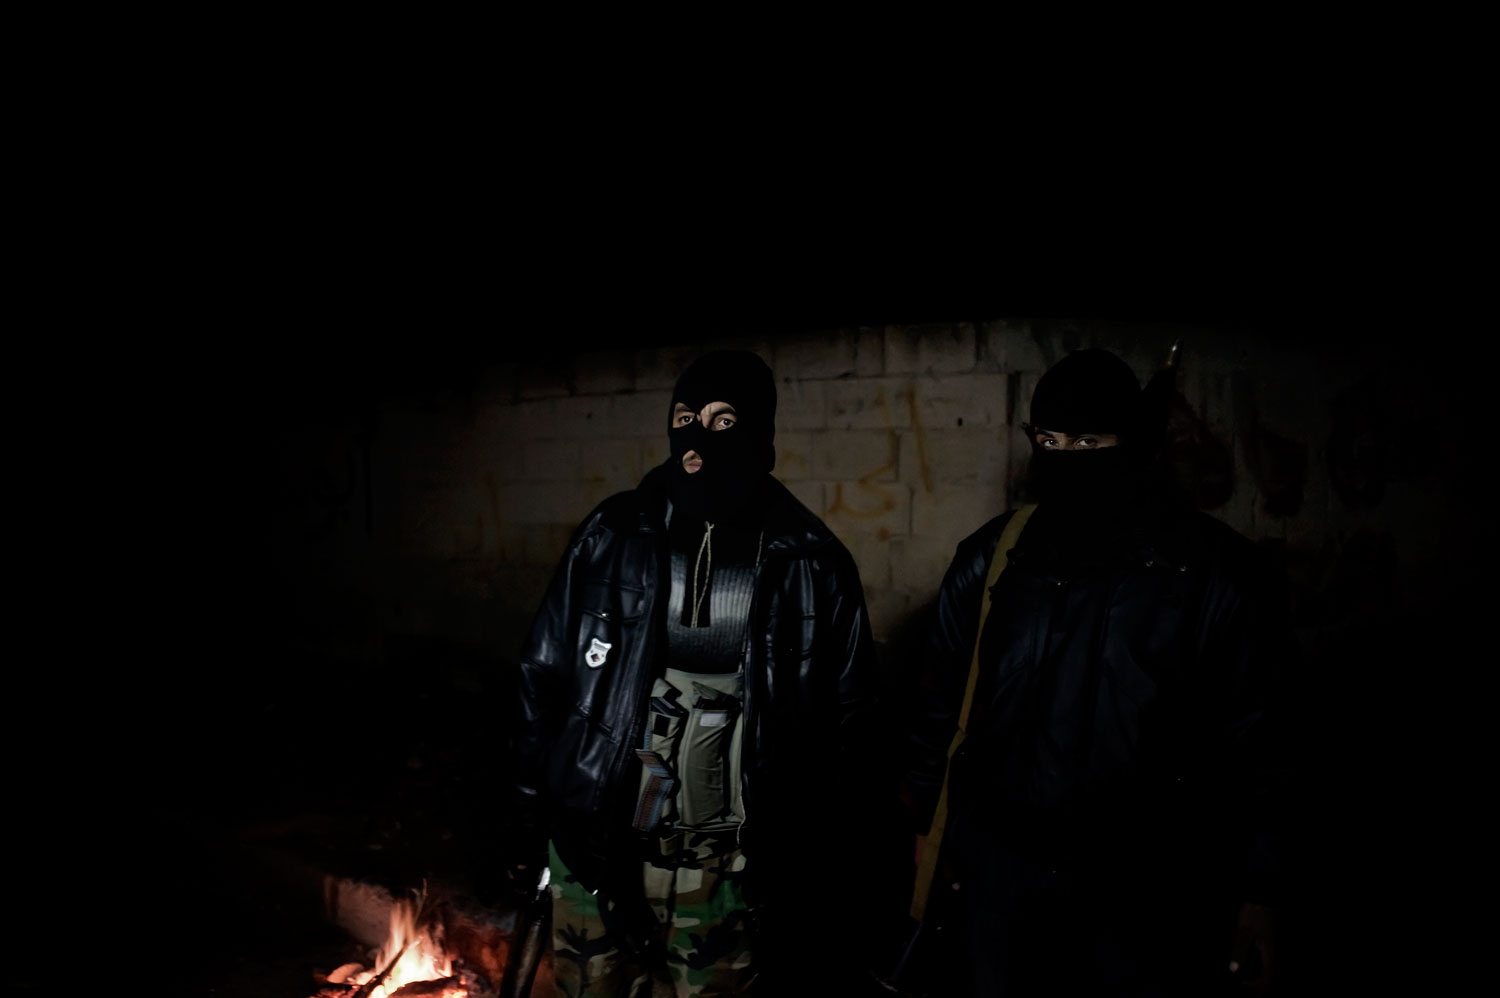 Members of the Free Syrian Army stand guard at night in Al Qsair. Jan. 23, 2012